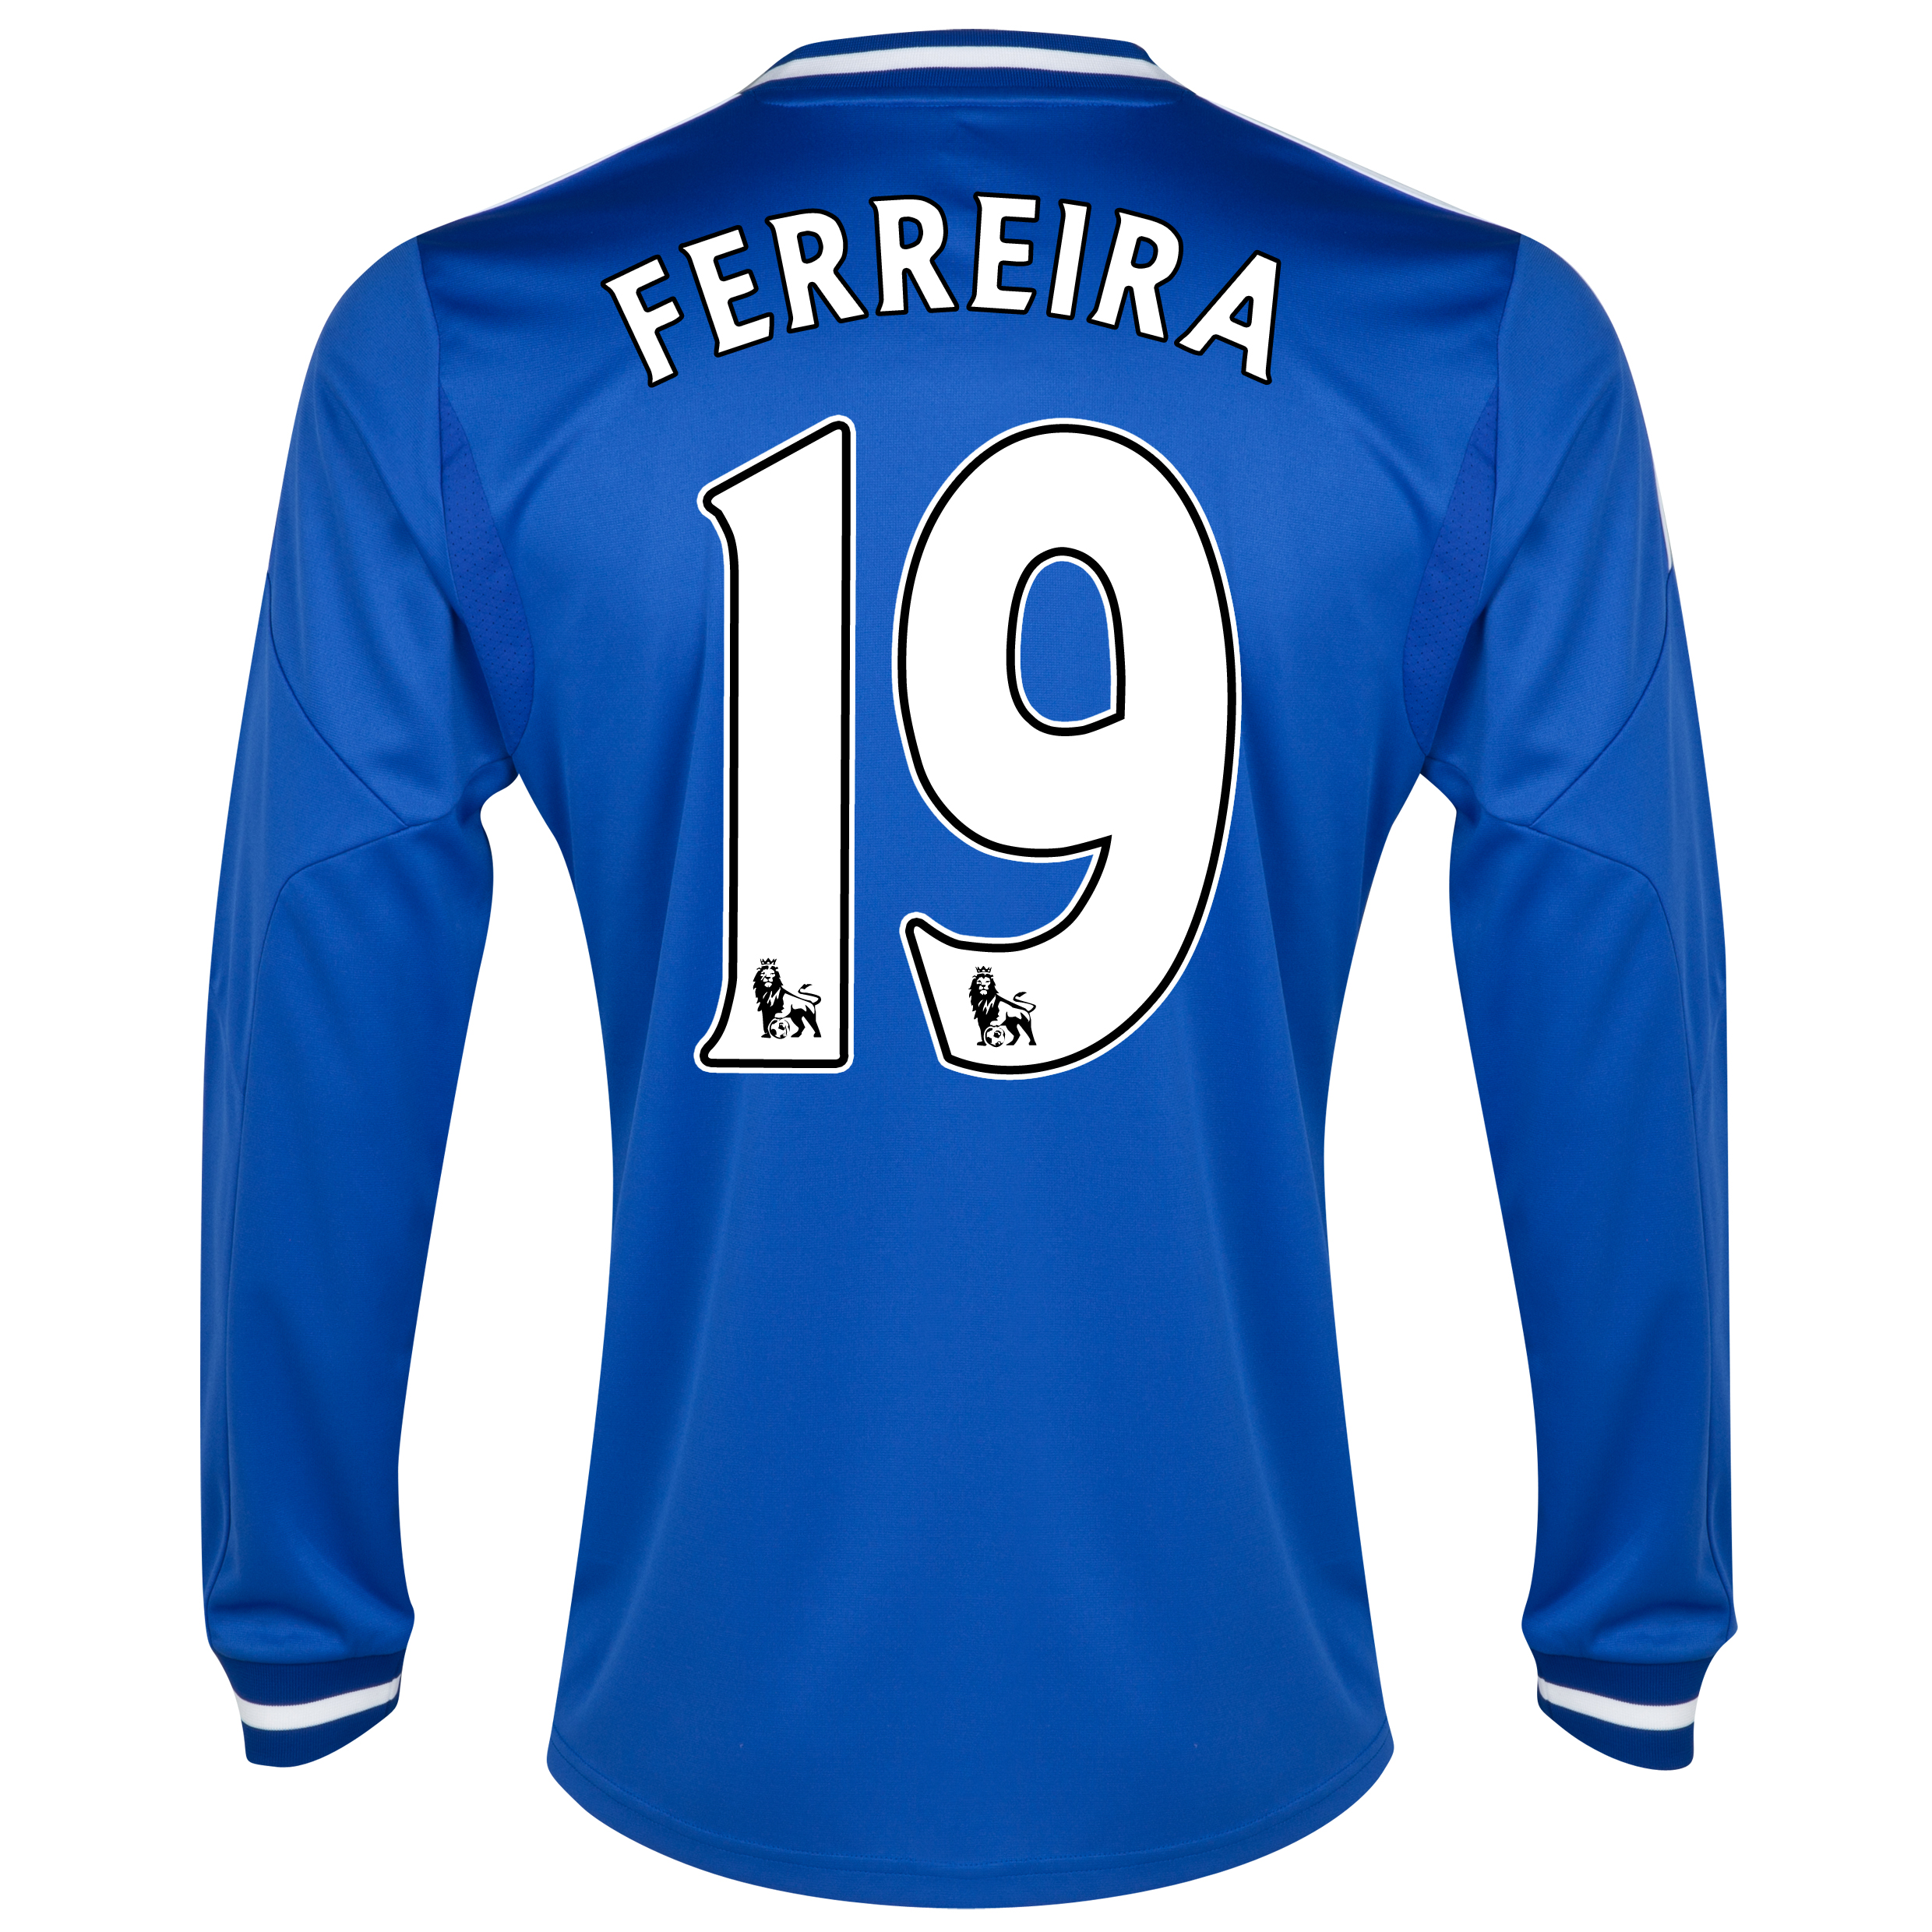 Chelsea Home Shirt 2013/14 - Long Sleeve - Kids with Ferreira 19 printing